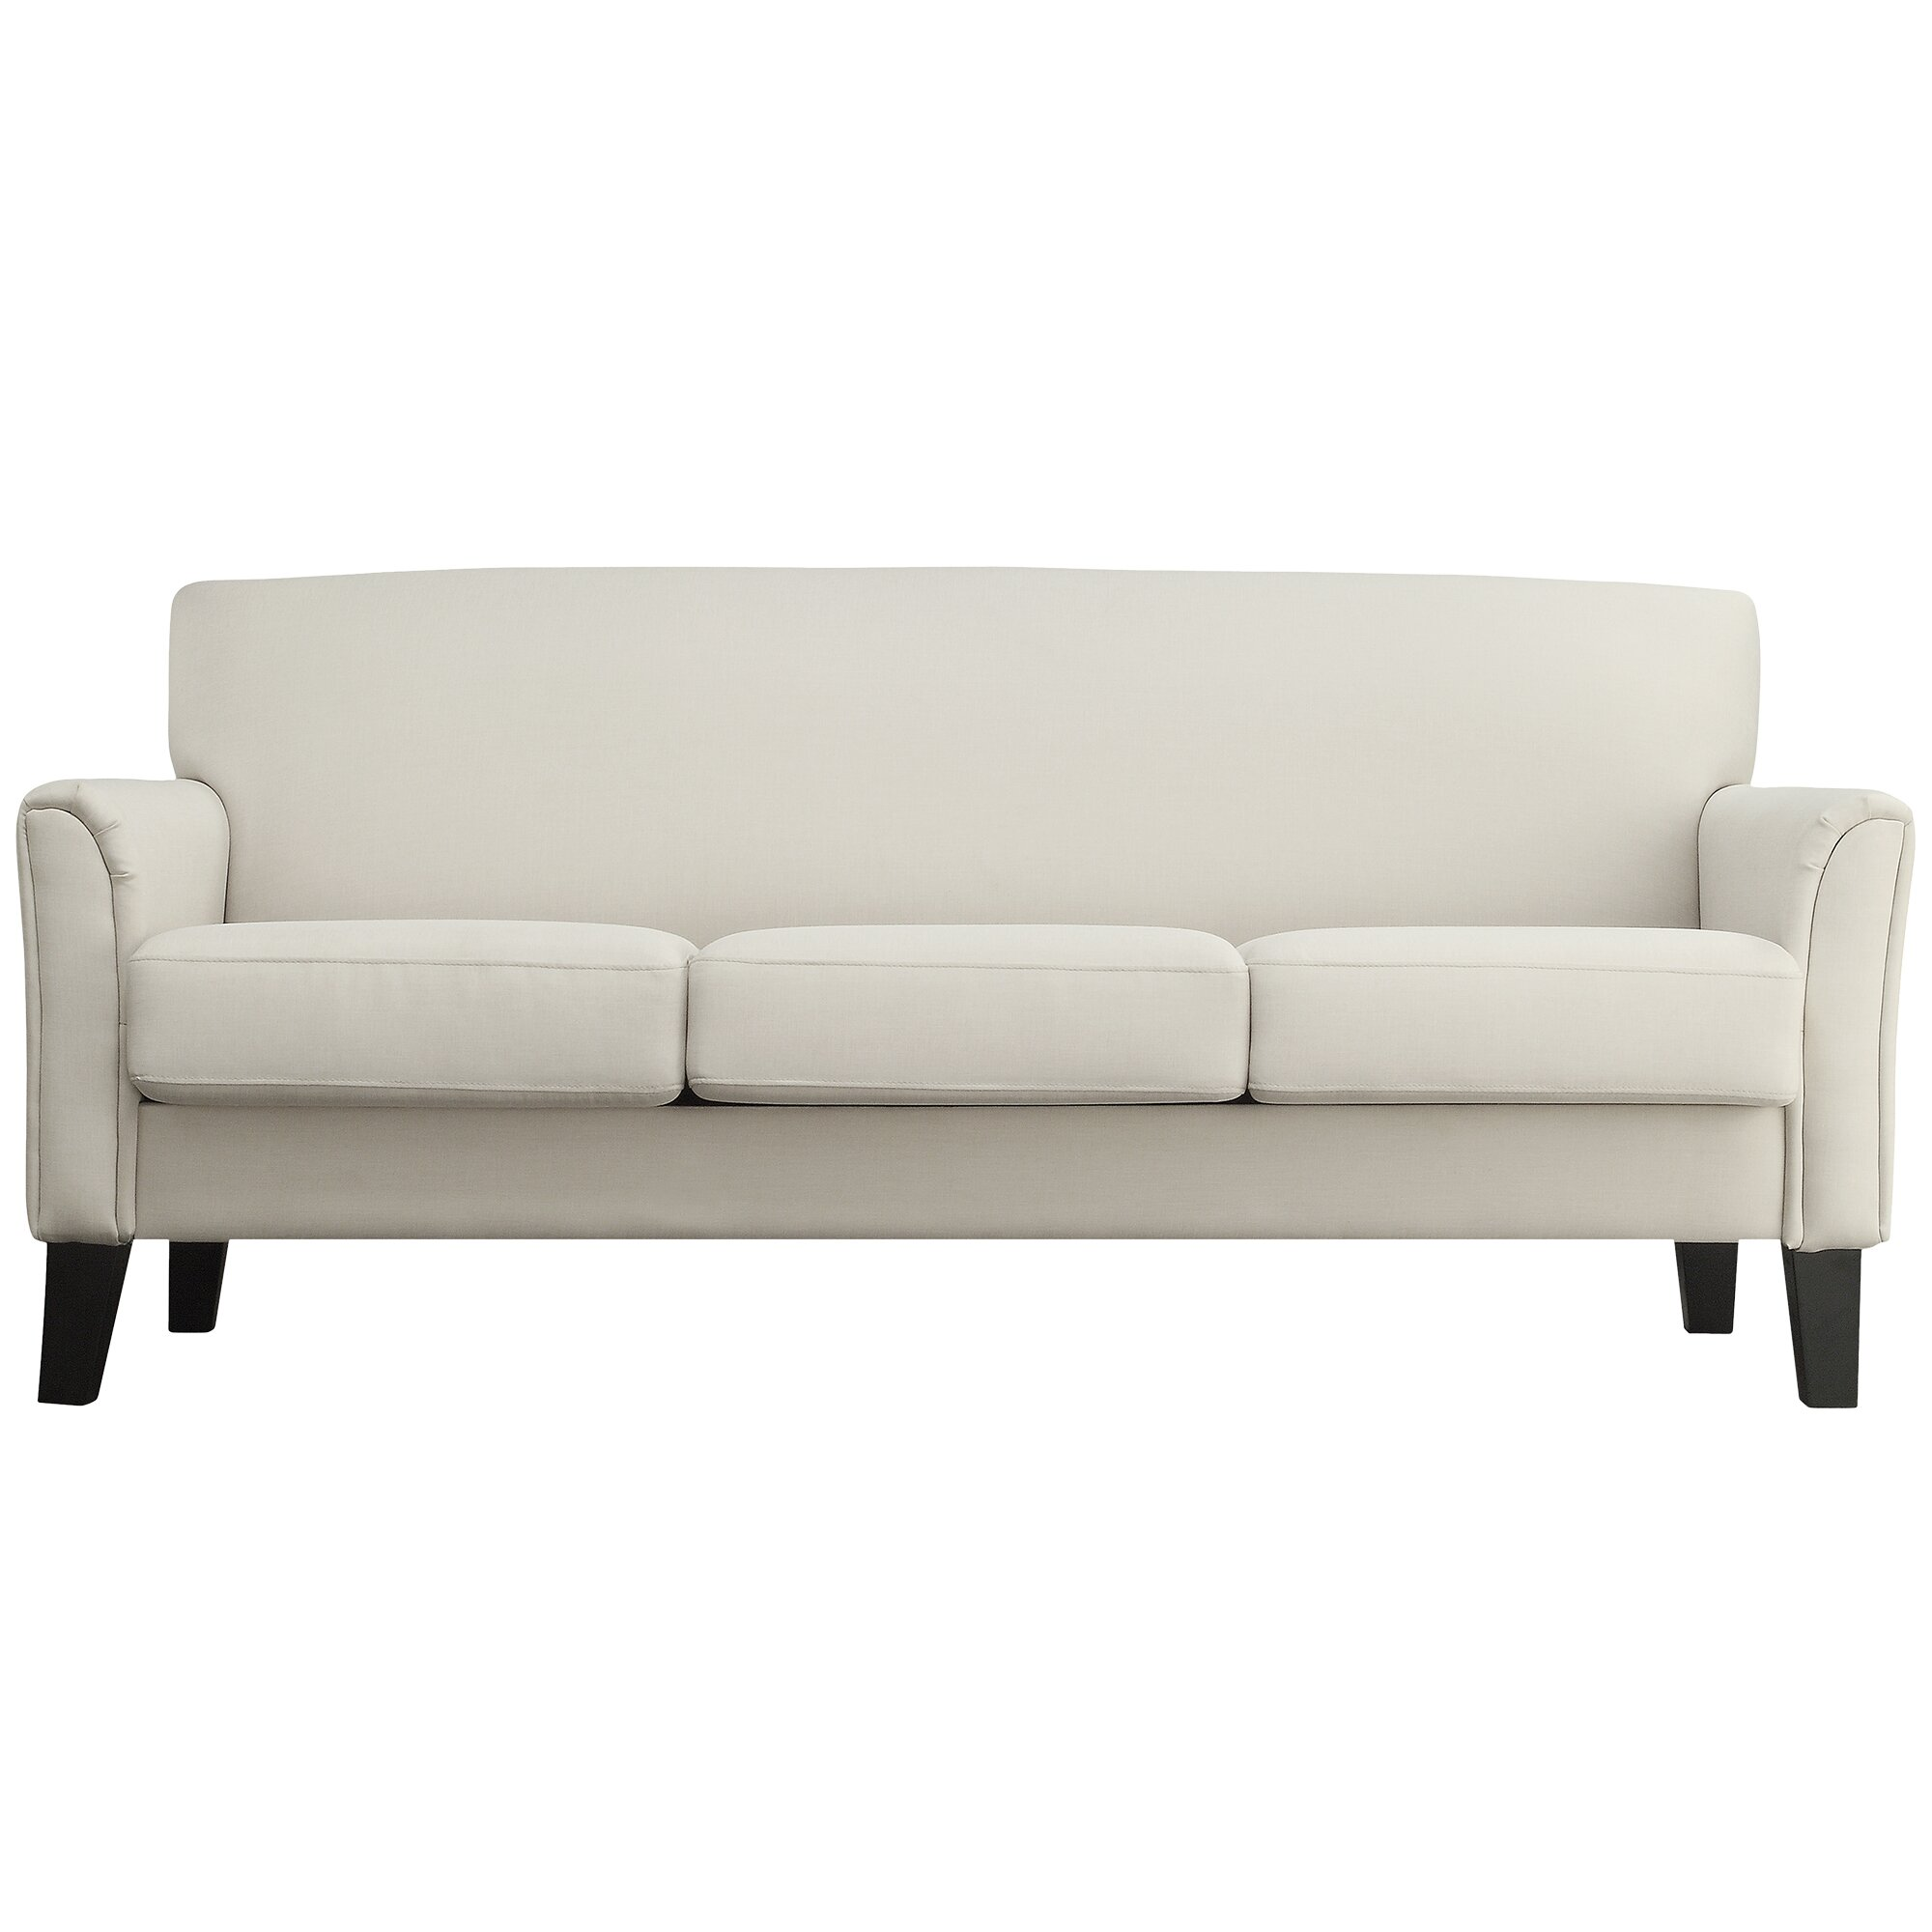 Darby Home Co Crawford Modern Sofa Reviews Wayfair